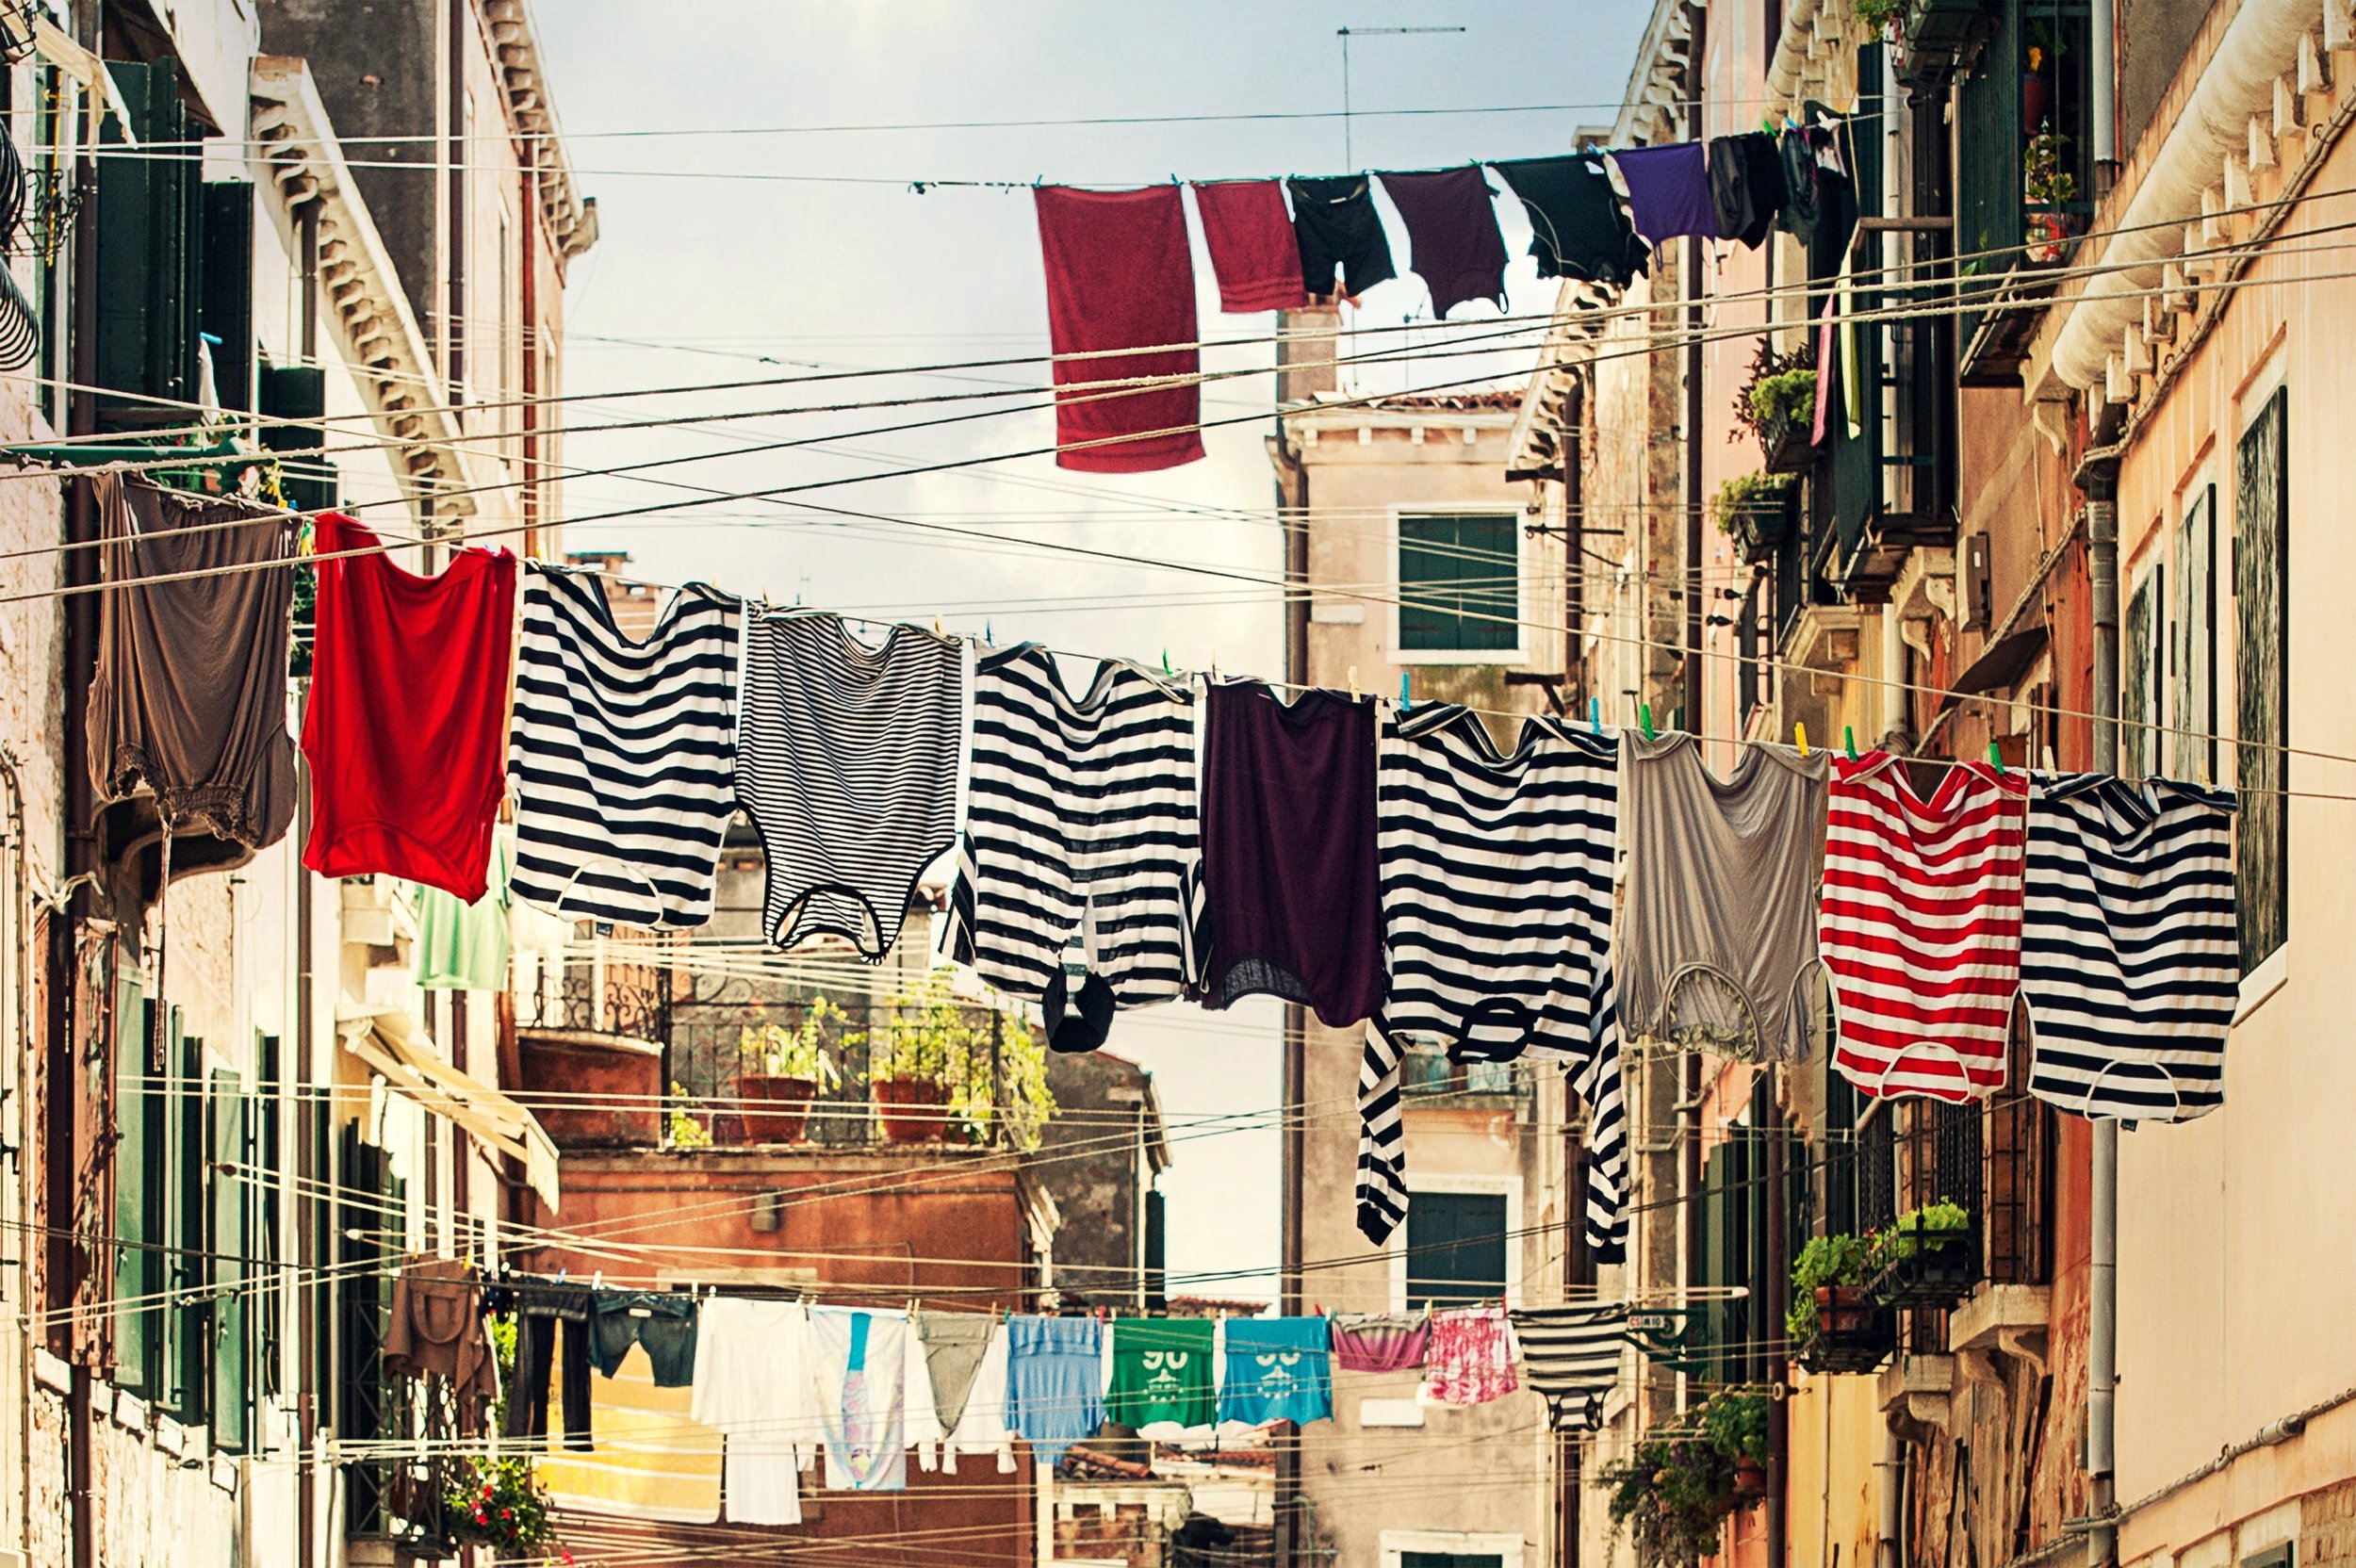 buildings-clothes-clothes-line-102303.jpg